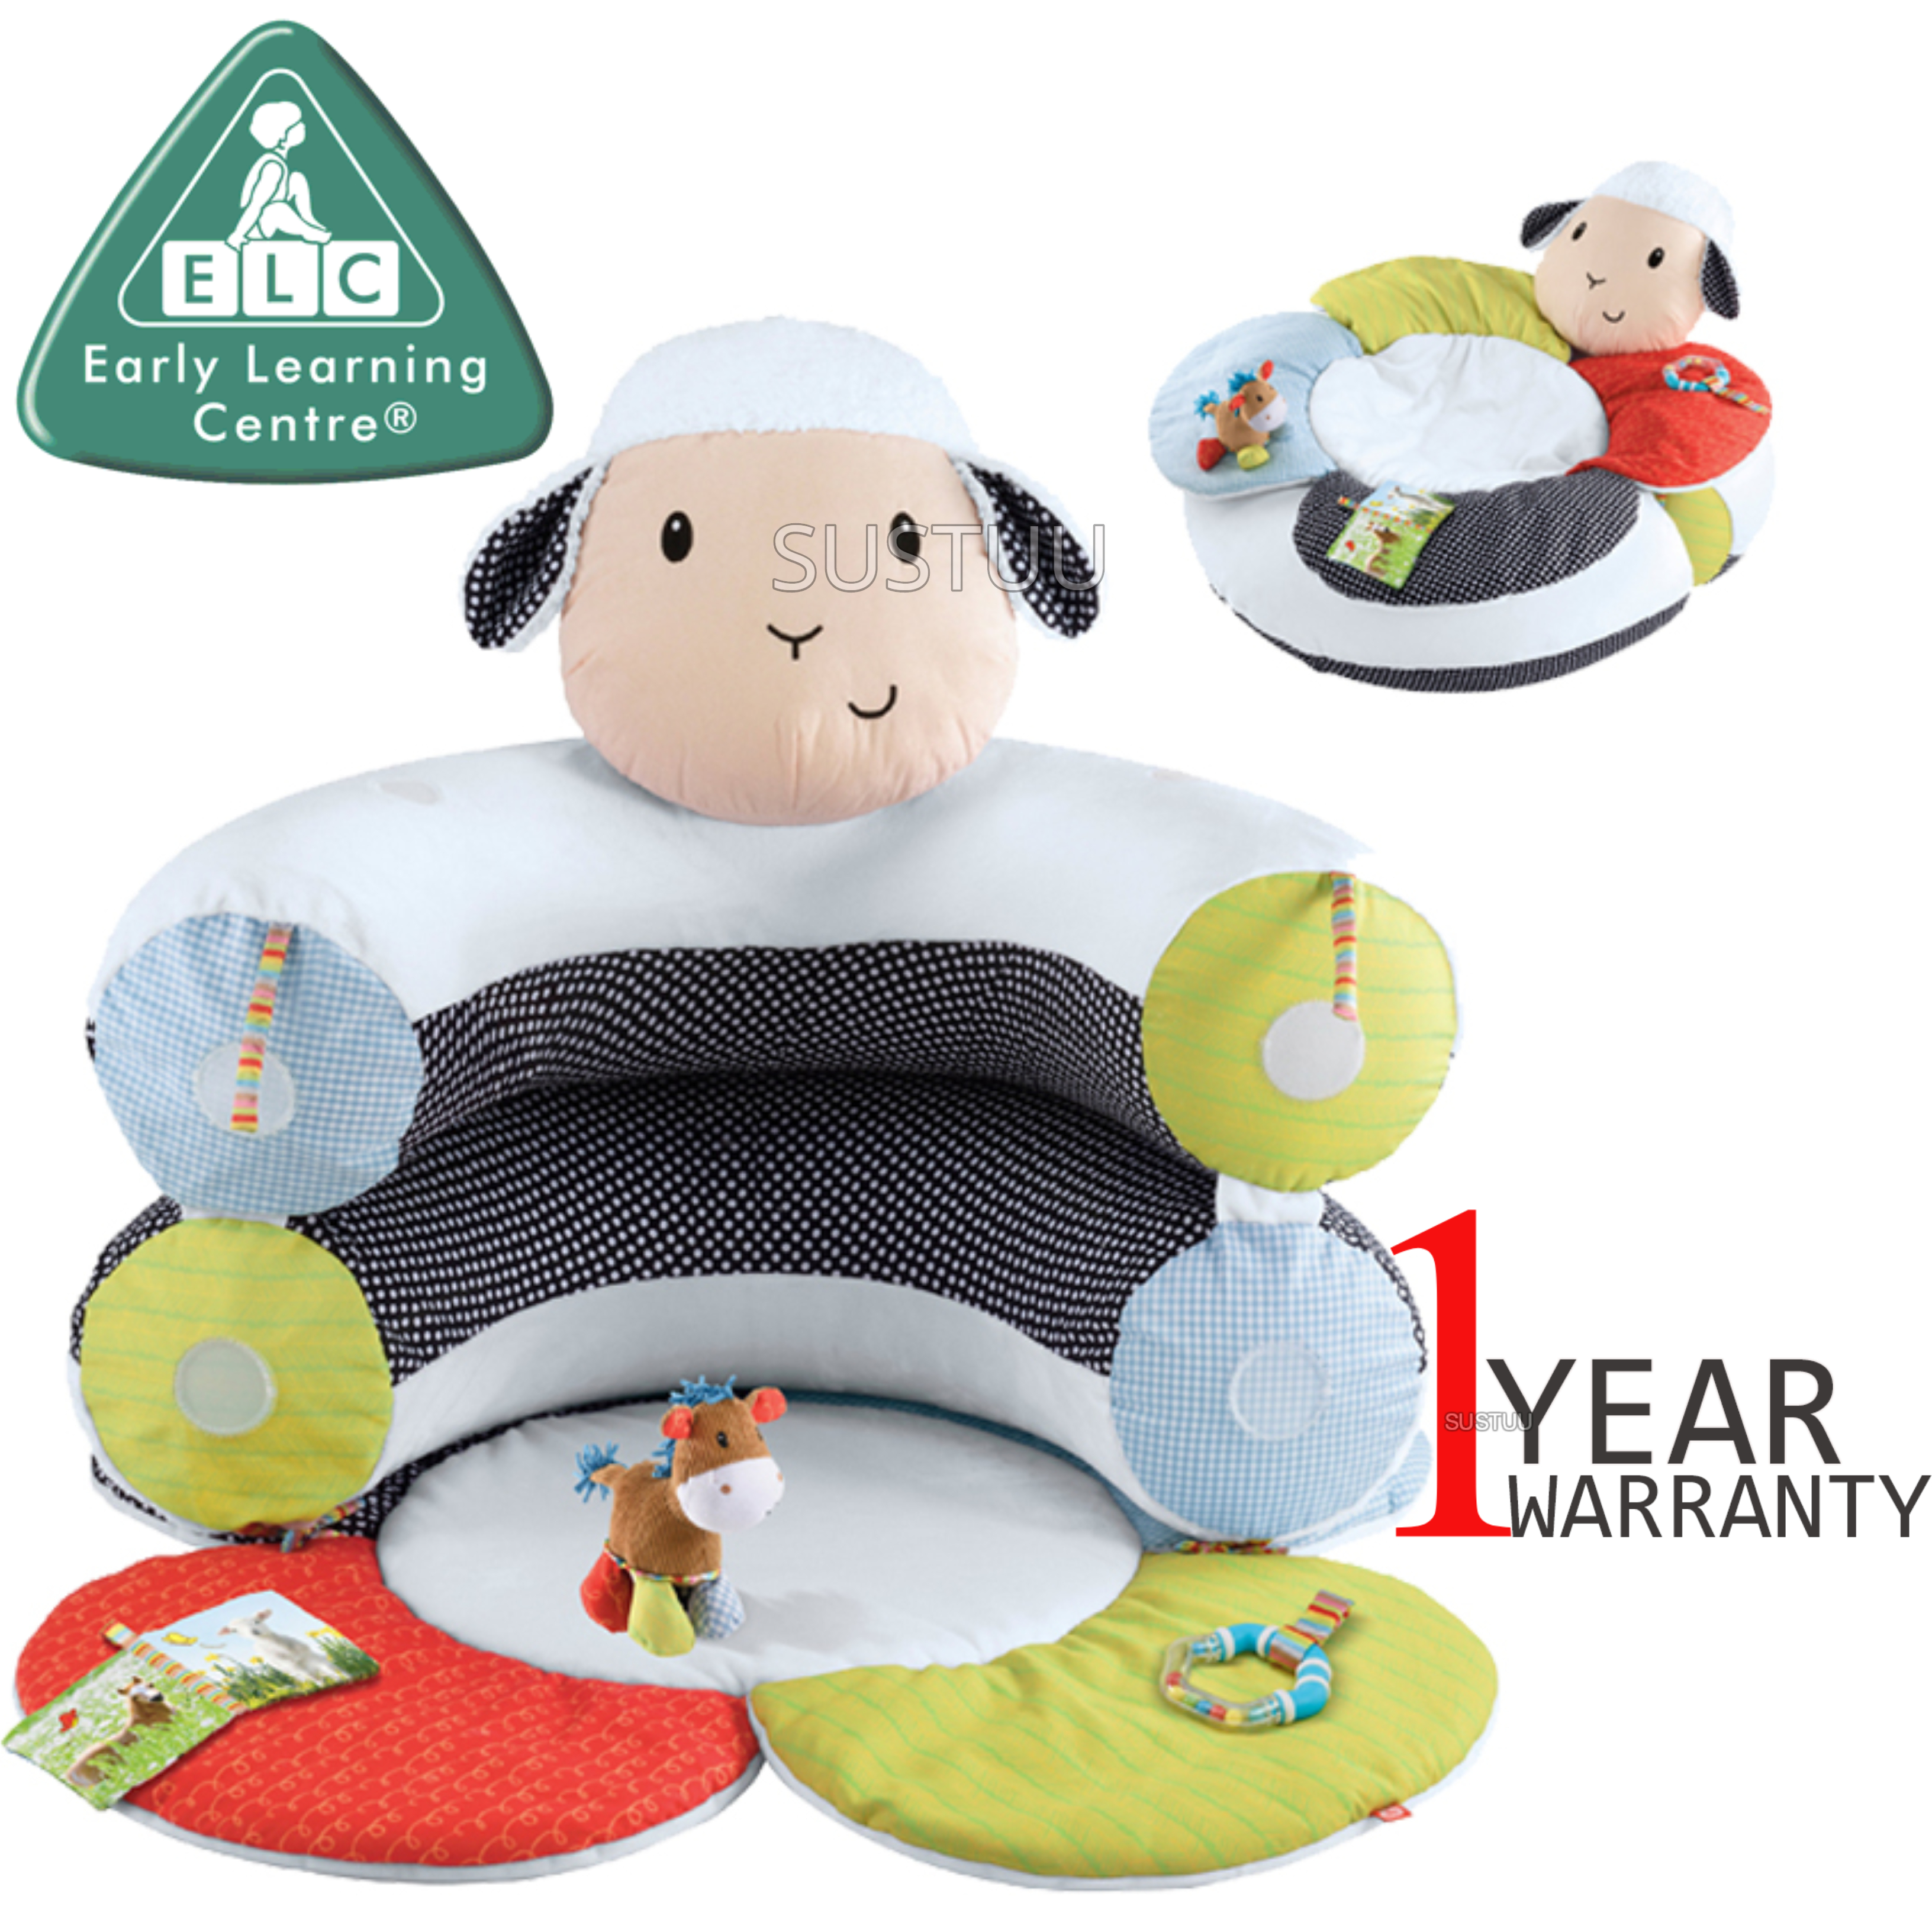 ELC Blossom Farm Lily Lamb Sit Me Up Cosy | Kids Soft Tummy Time Play Mat | x3 Toys